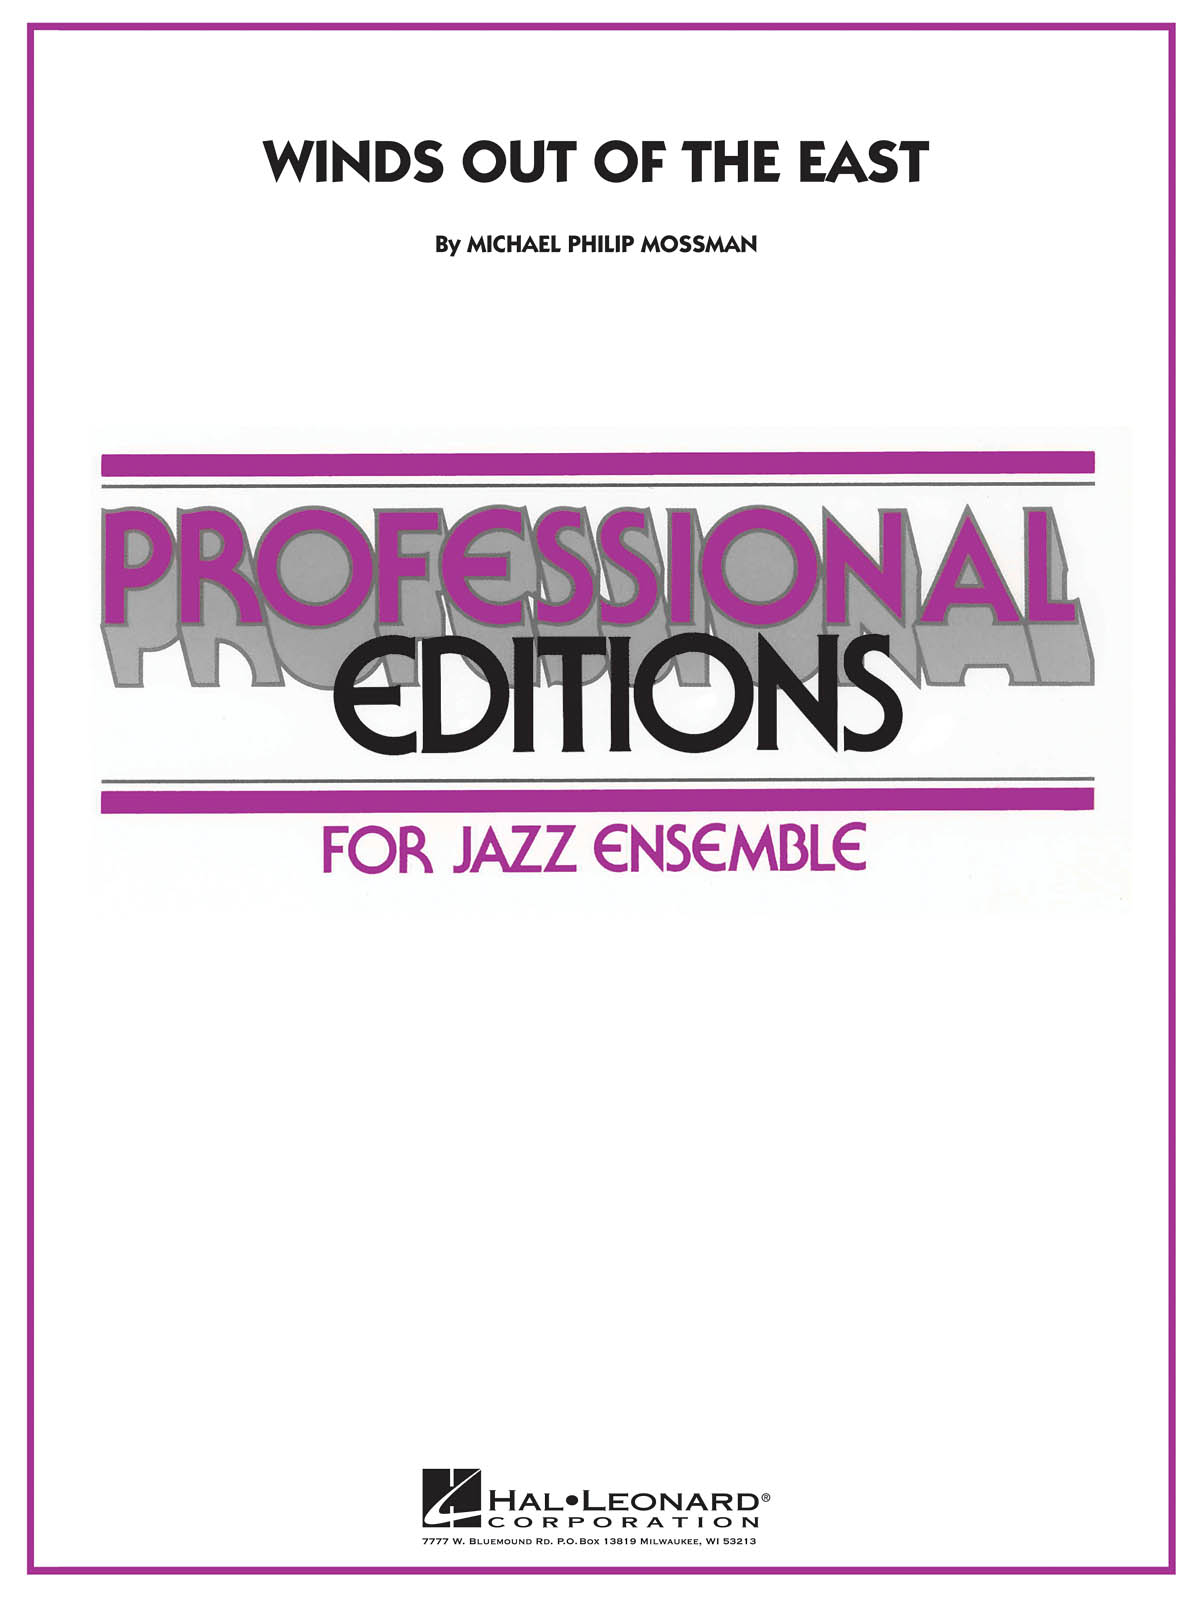 Winds Out of the East: Professional Editions for Jazz Ensemble